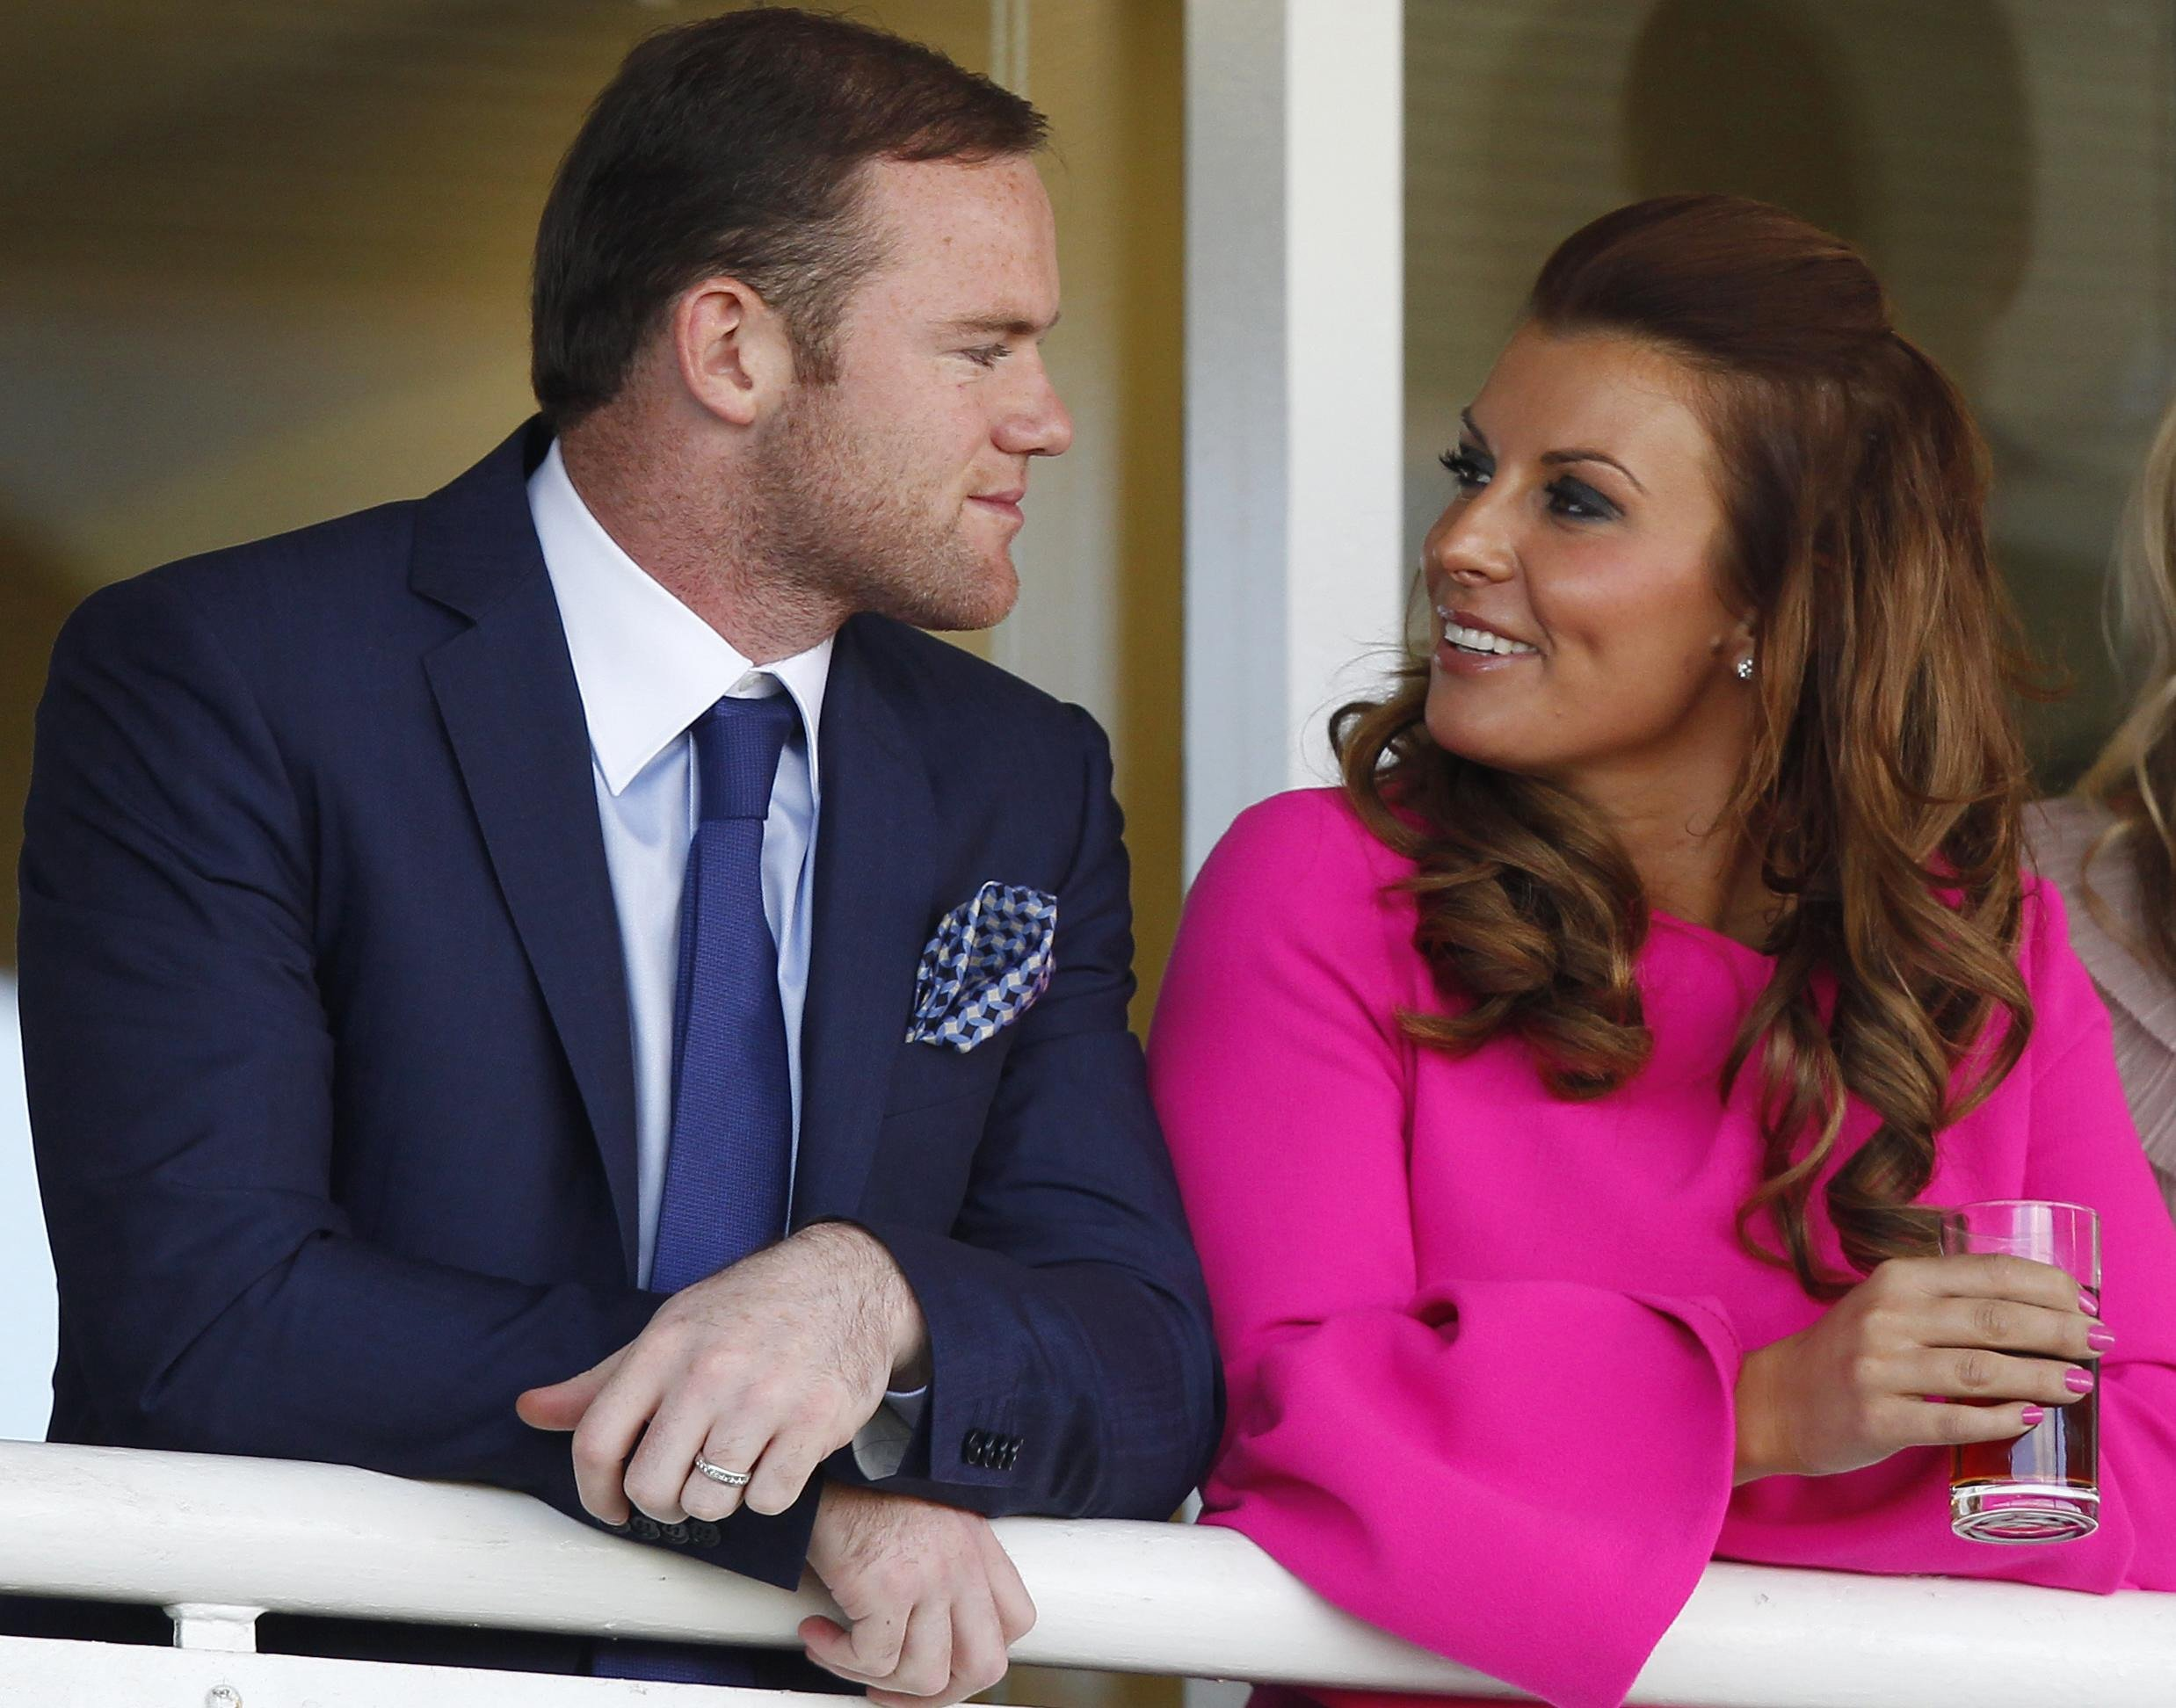 Wayne Rooney with his wife Coleen who has revealed she is pregnant with her fourth child., Image: 345747452, License: Rights-managed, Restrictions: , Model Release: no, Credit line: Profimedia, Press Association